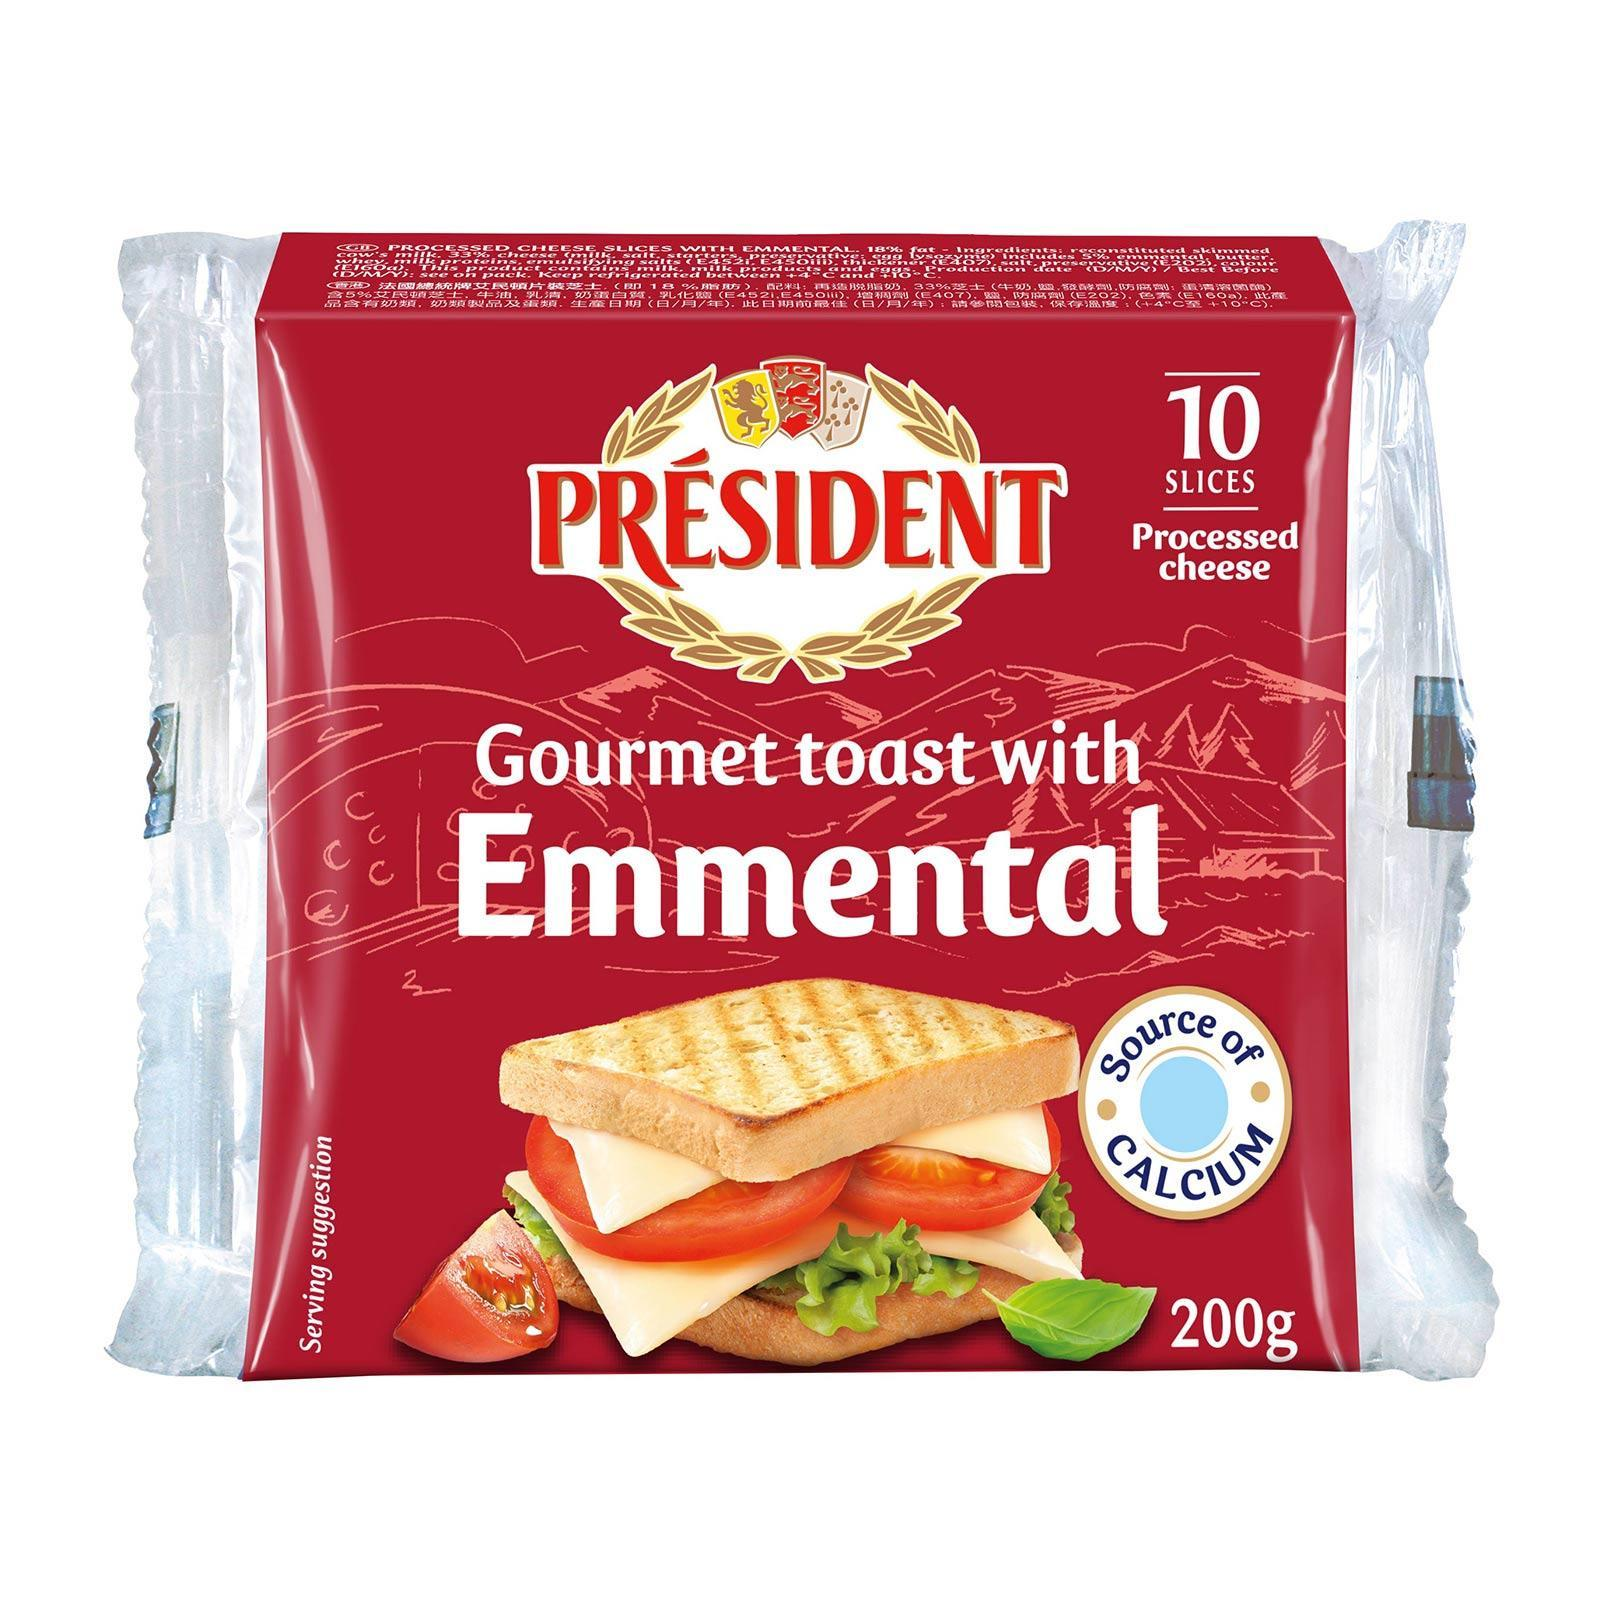 President Emmental Toast Cheese Slices